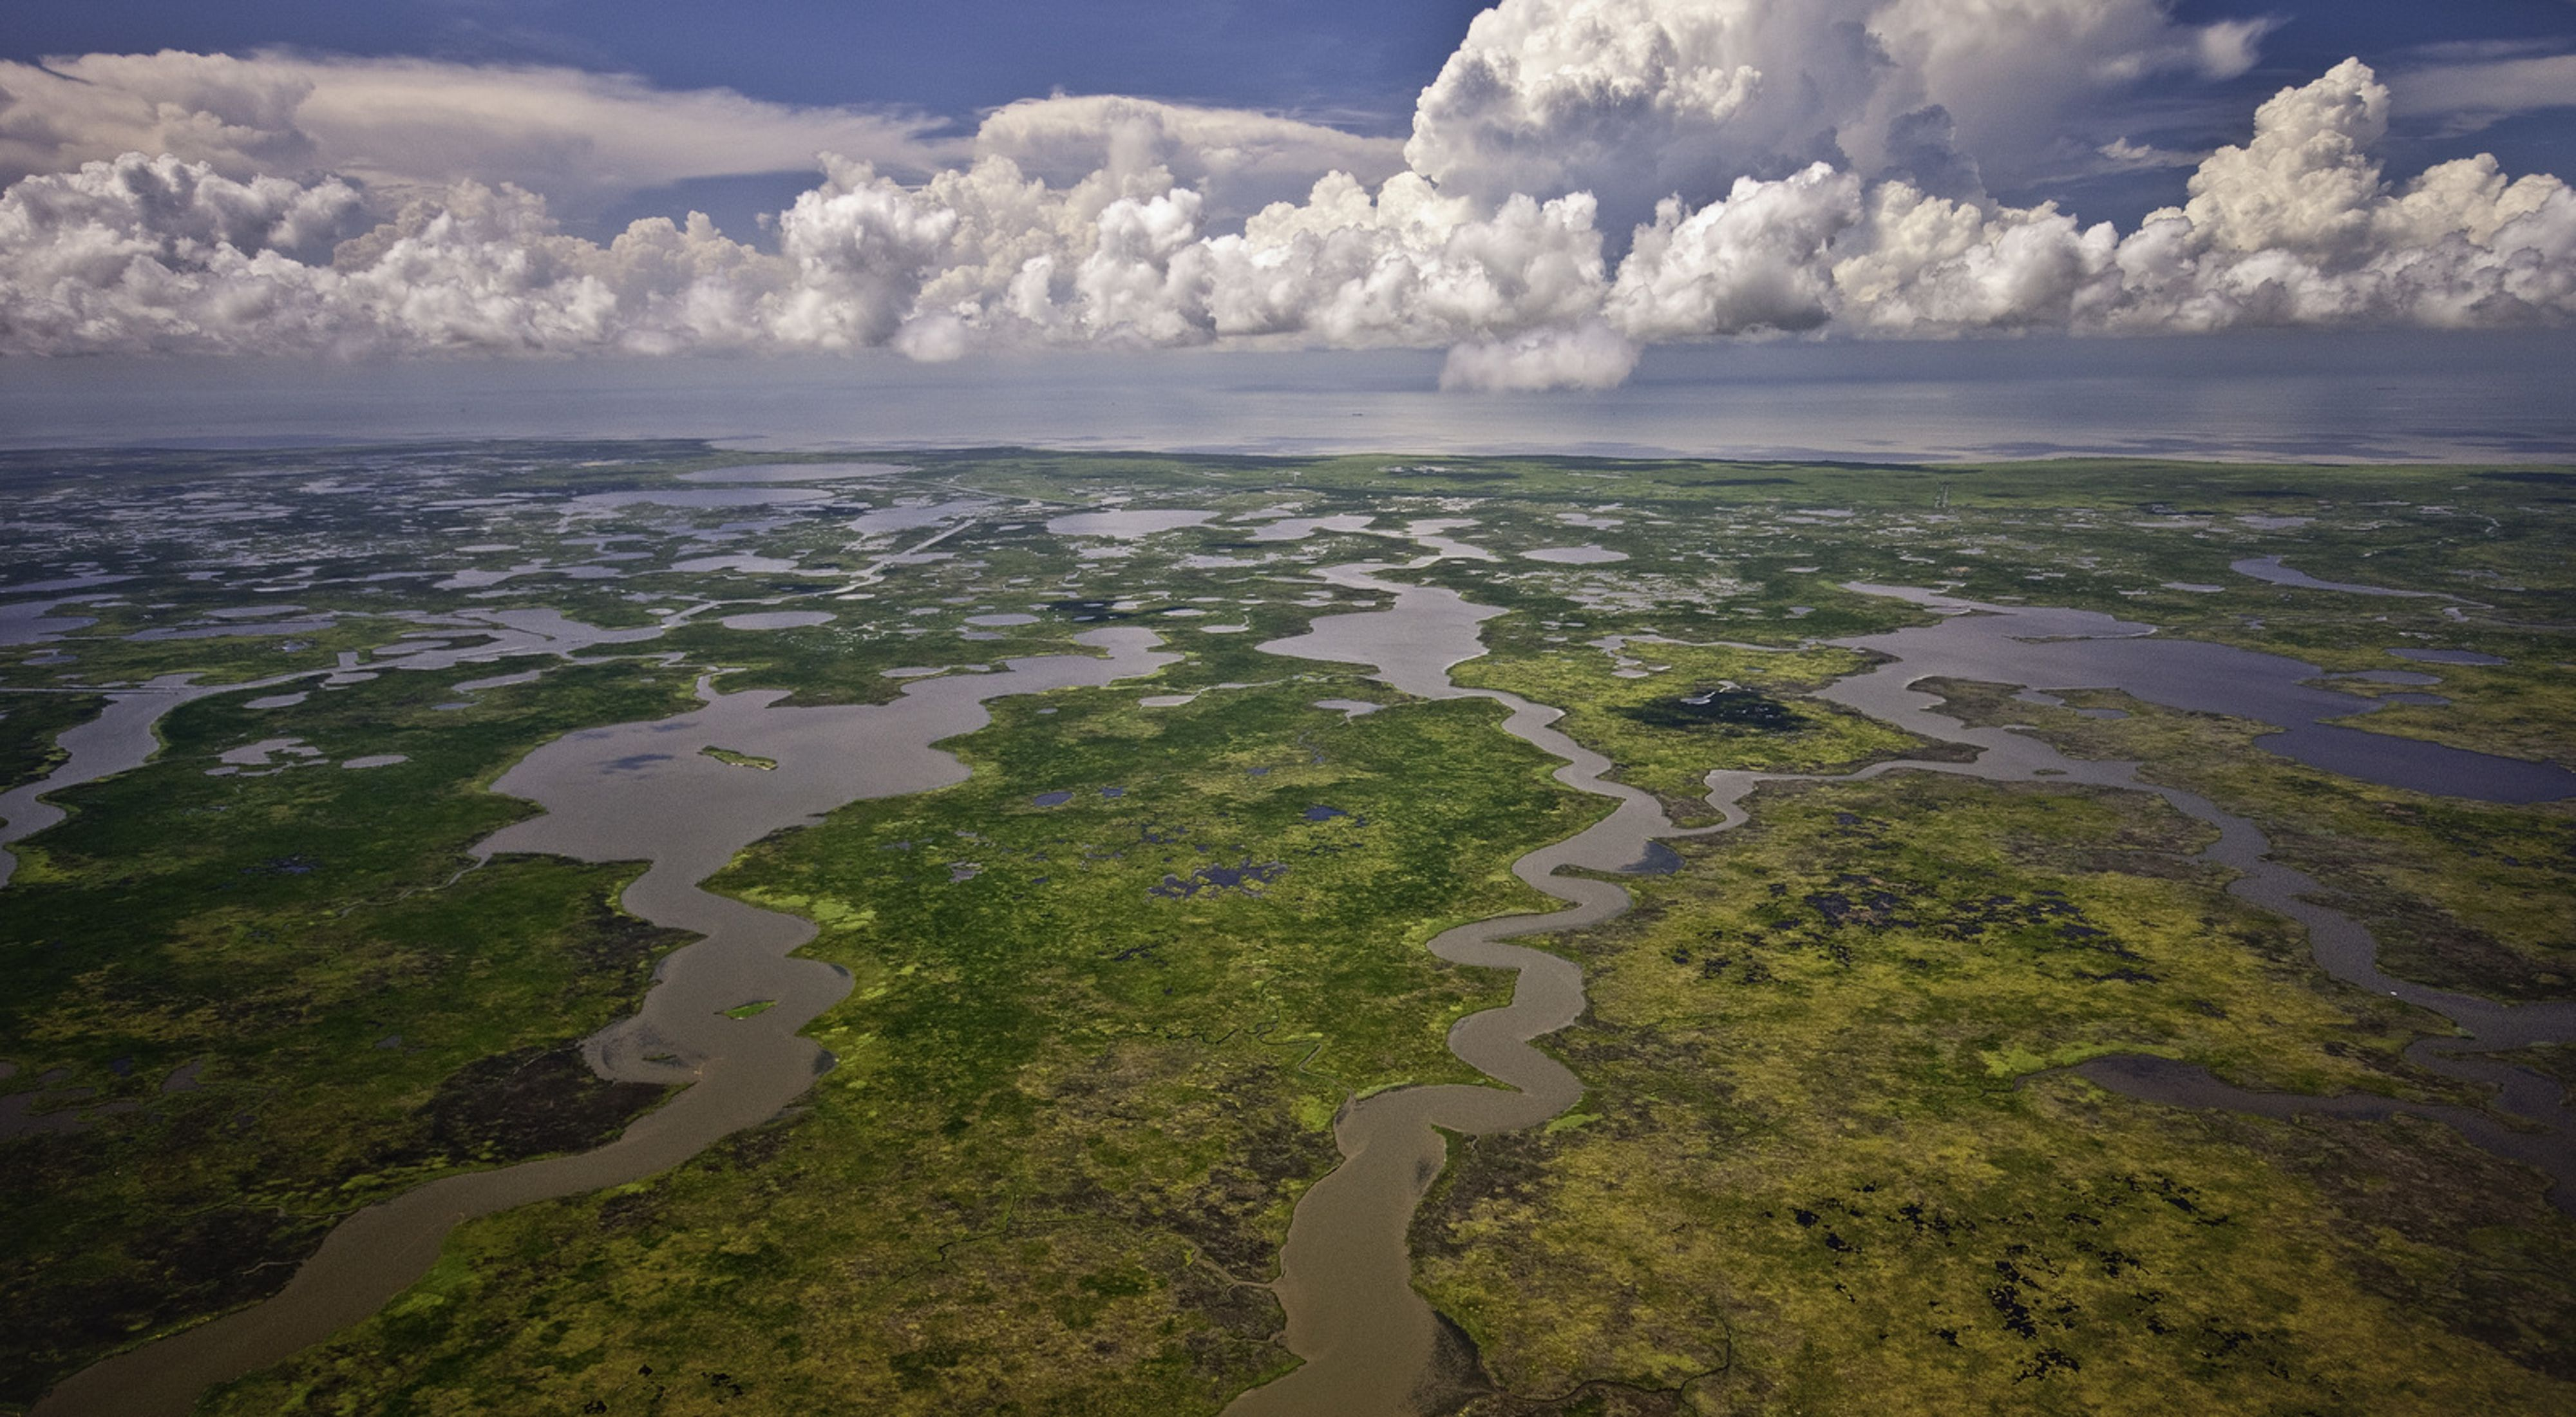 Aerial view of wetlands and marshlands that comprise the Mississippi River delta on the Louisiana Gulf Coast